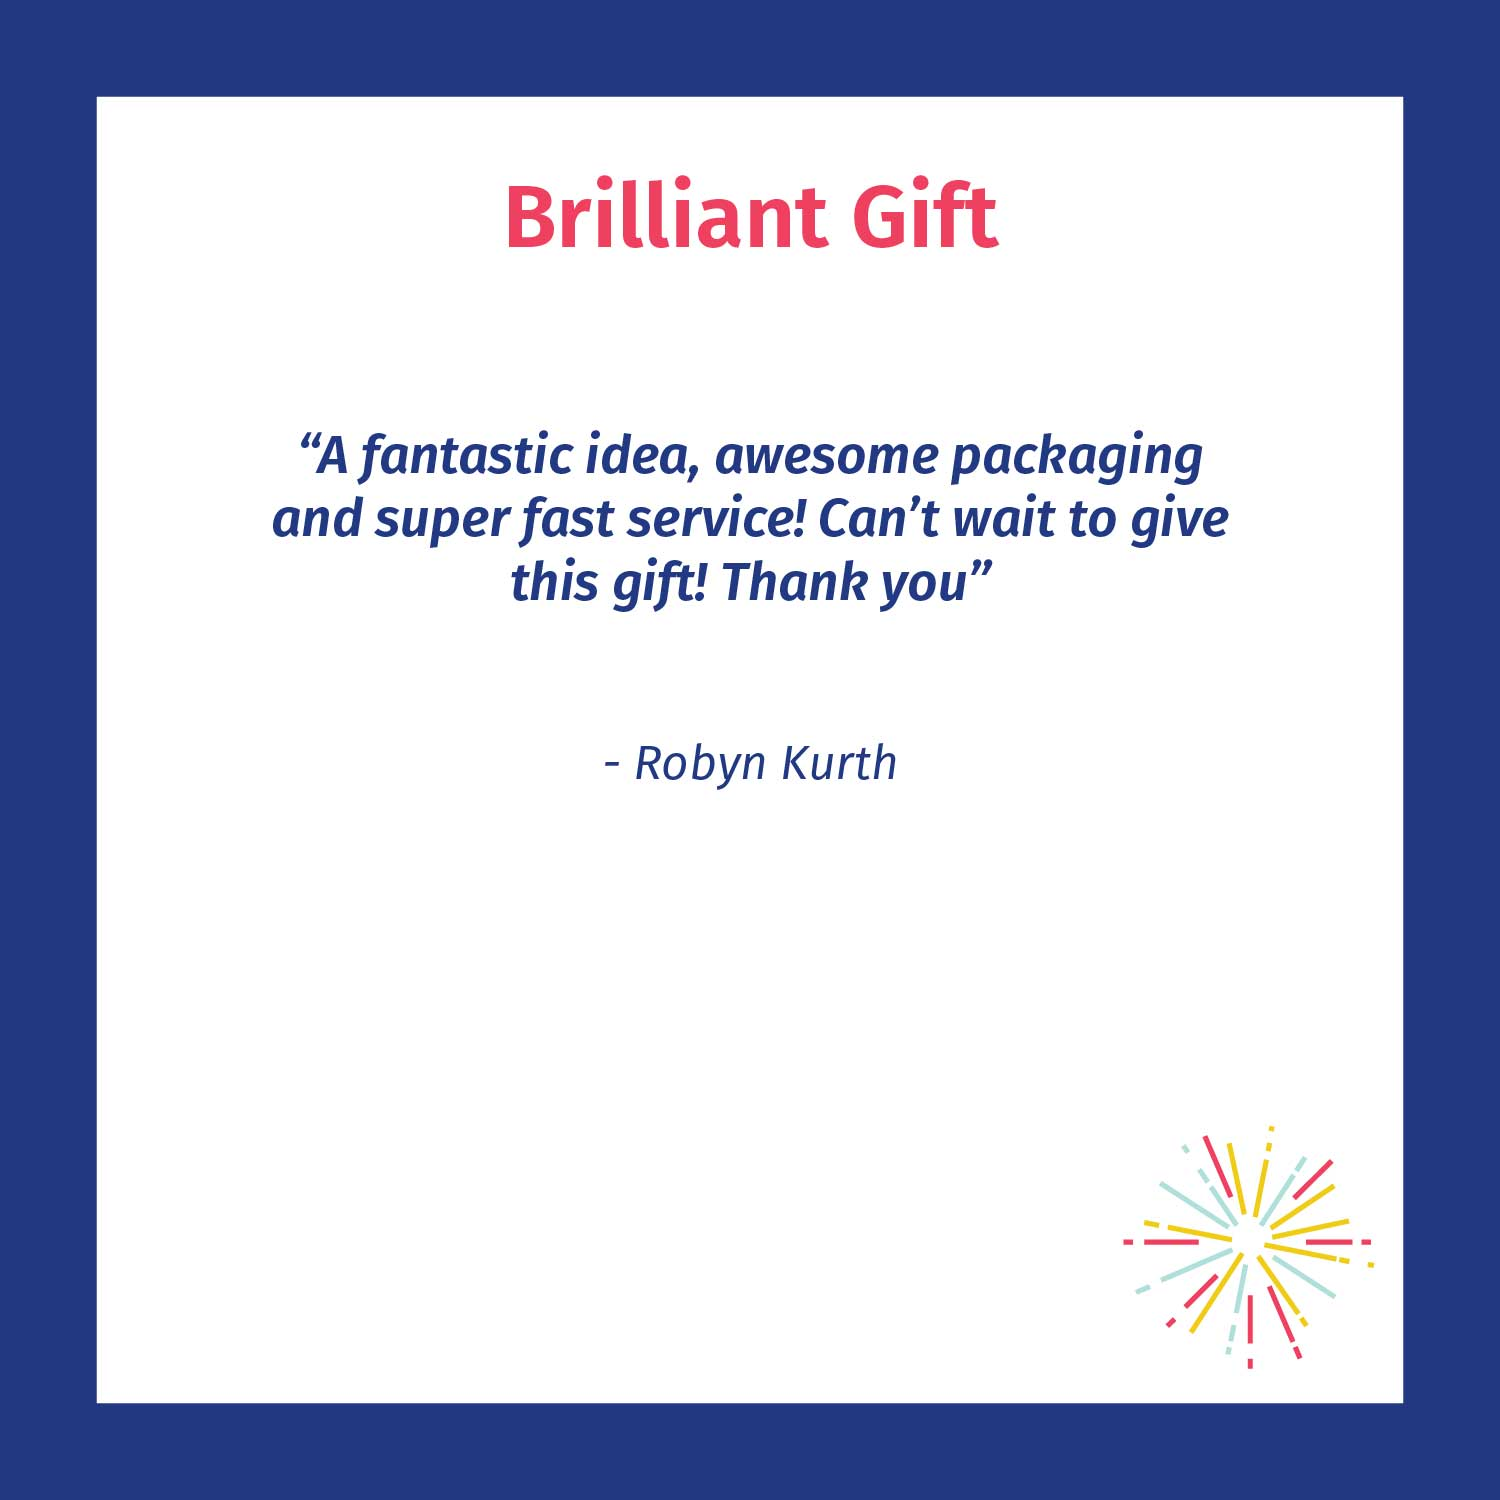 Brilliant gift - Chuffed customer review